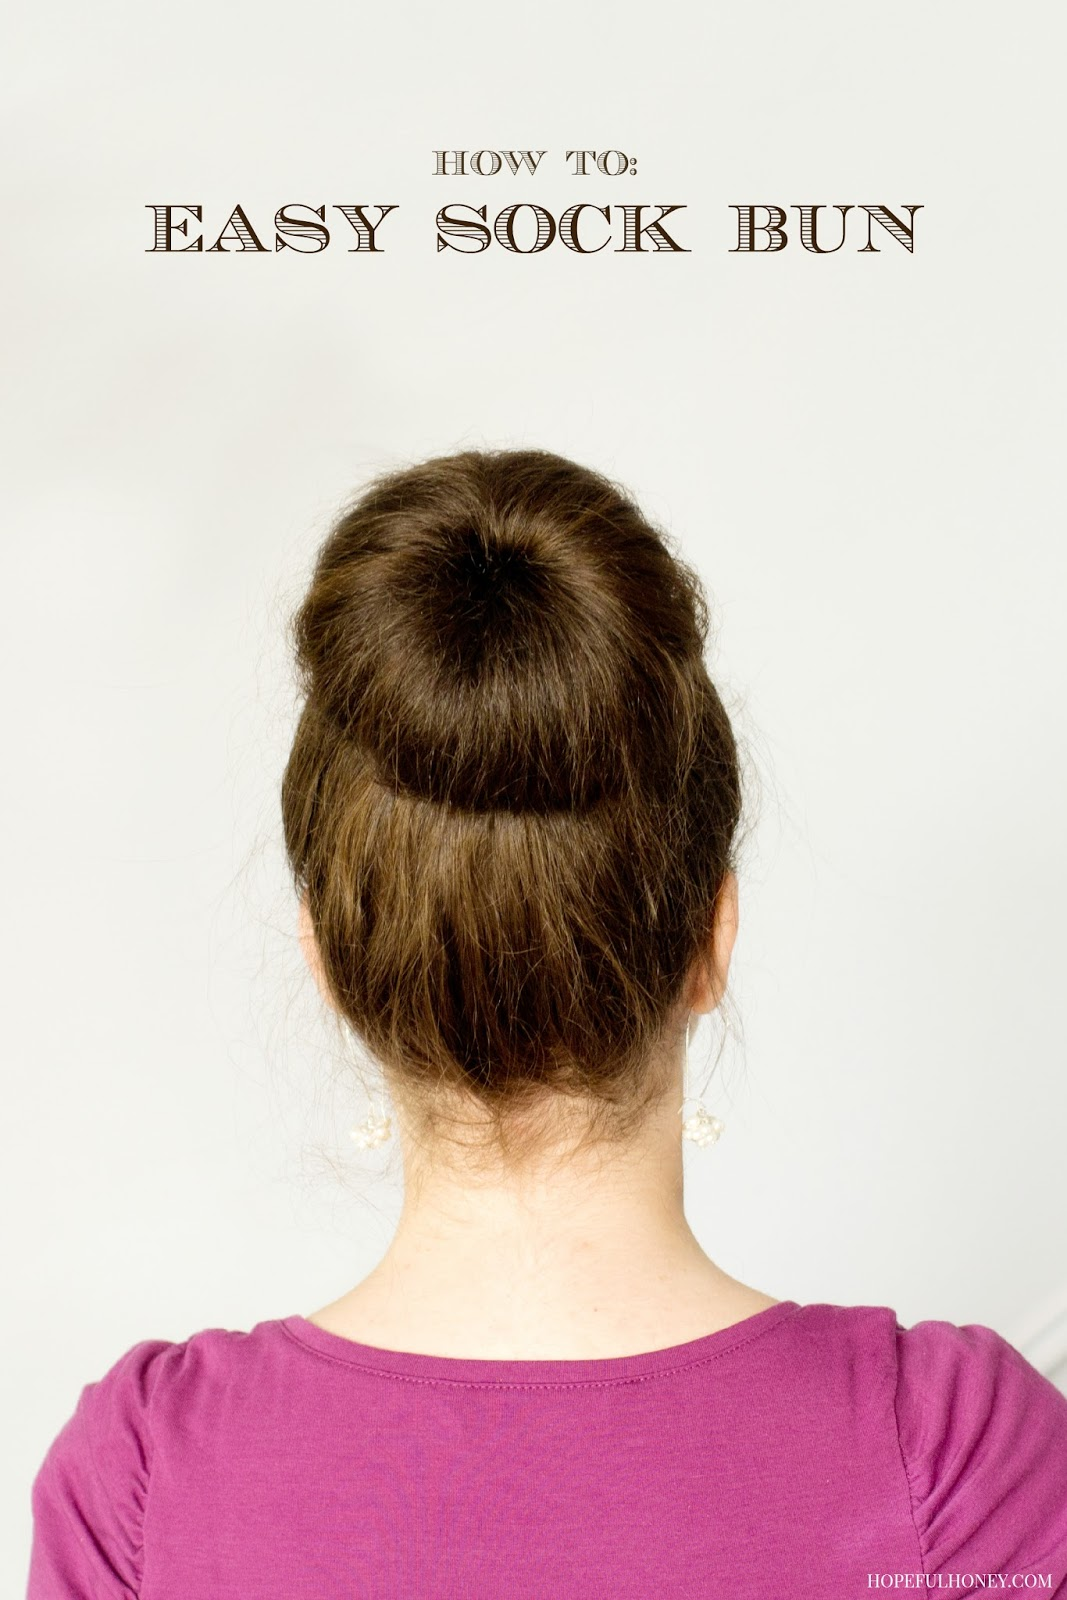 How to easy sock bun